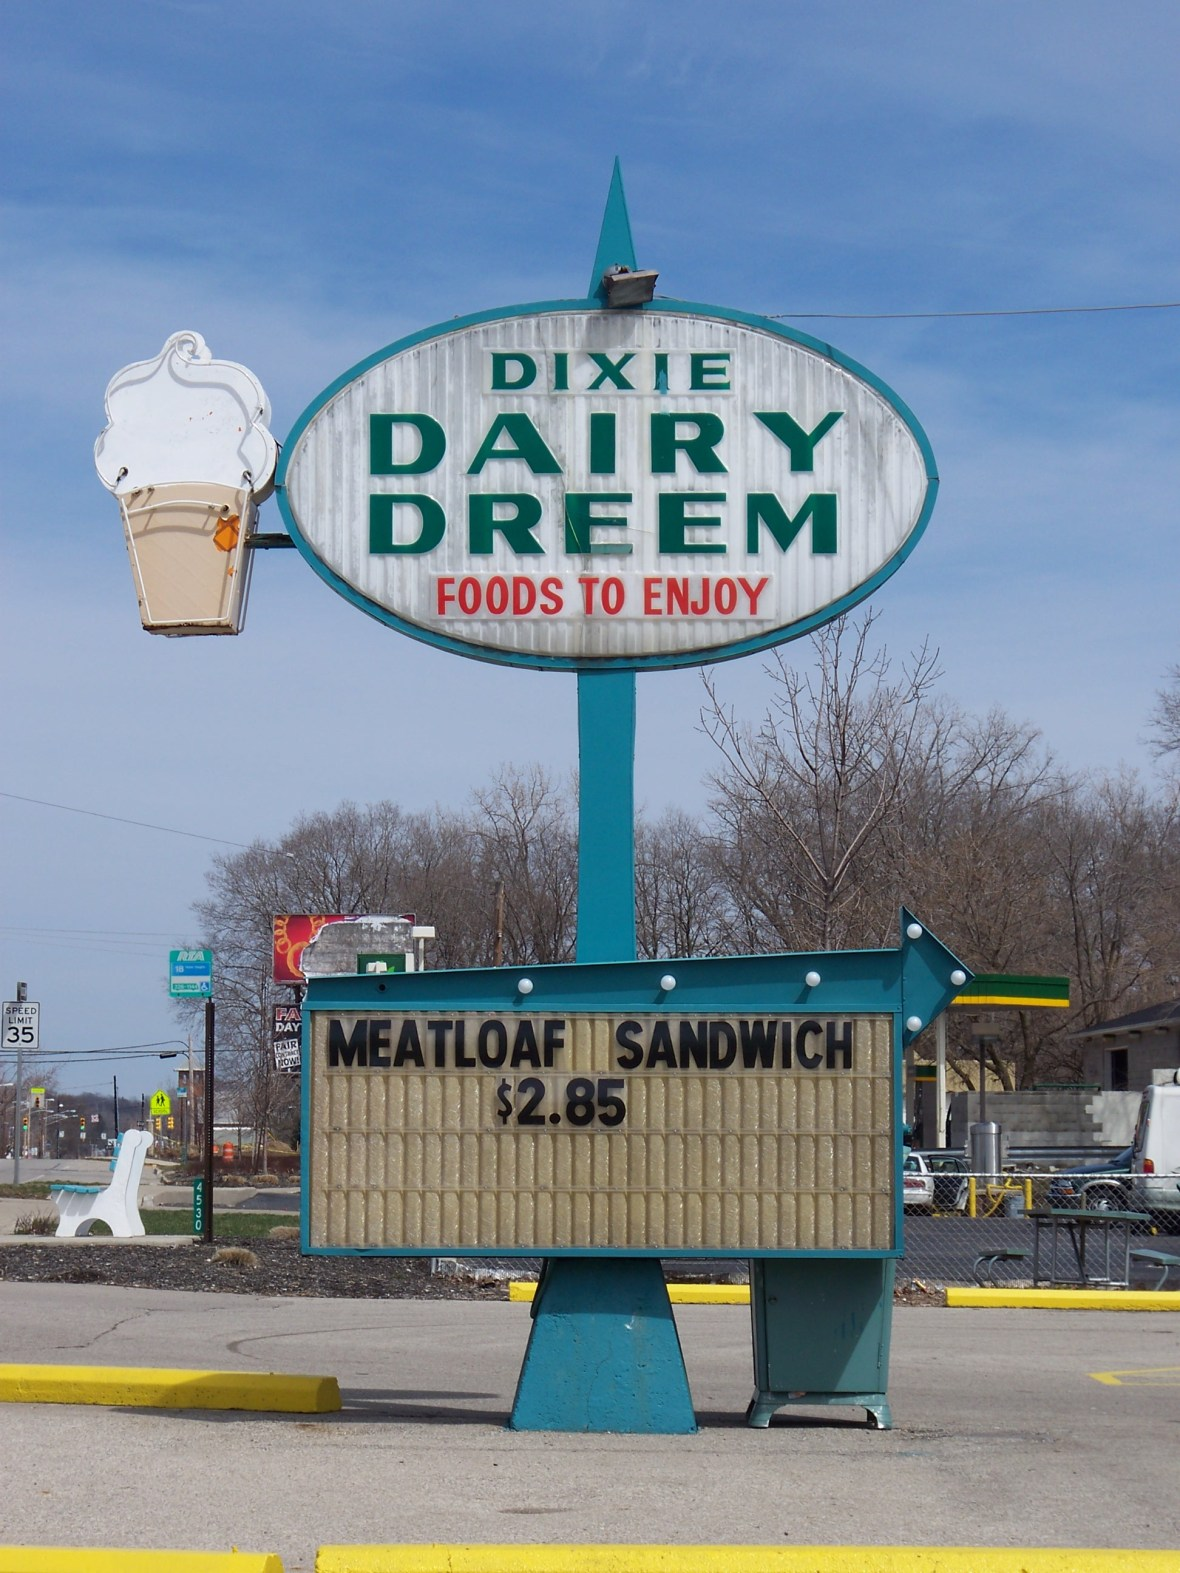 Dixie Dairy Dreem - 4542 South Dixie Drive, Dayton, Ohio U.S.A. - March 29, 2008